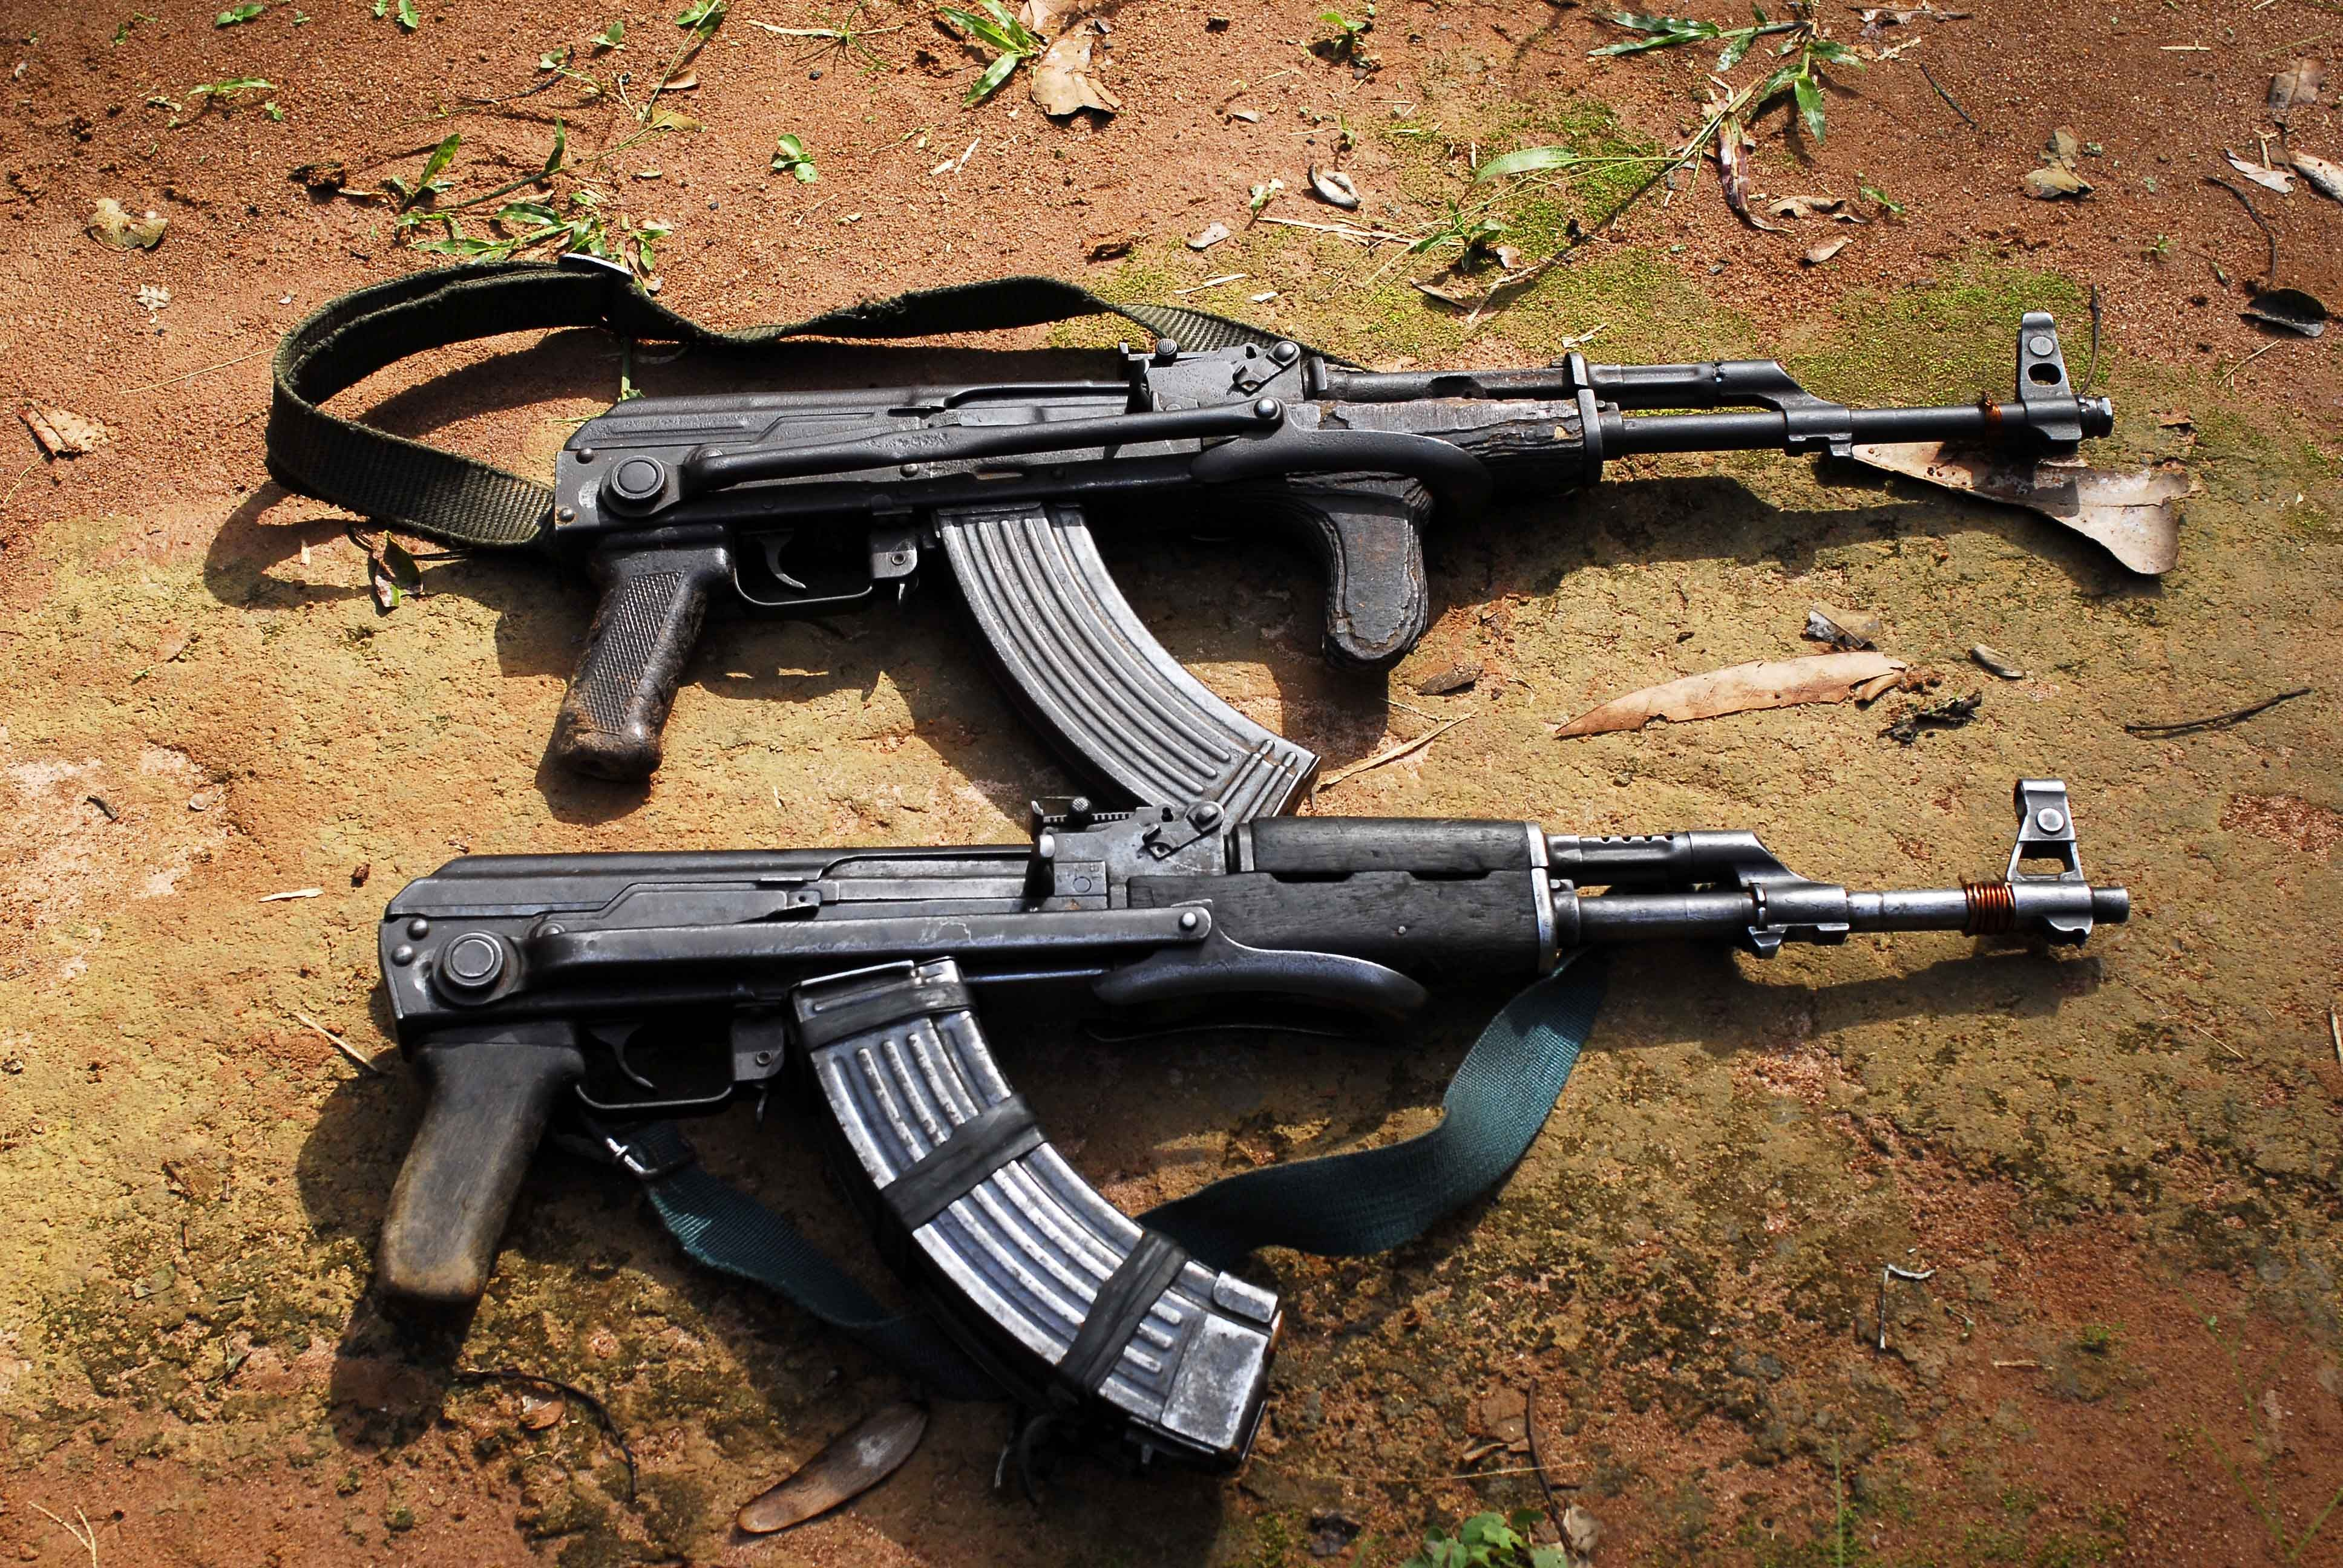 Weapons - akm assault rifle Wallpaper | Things we all need ...